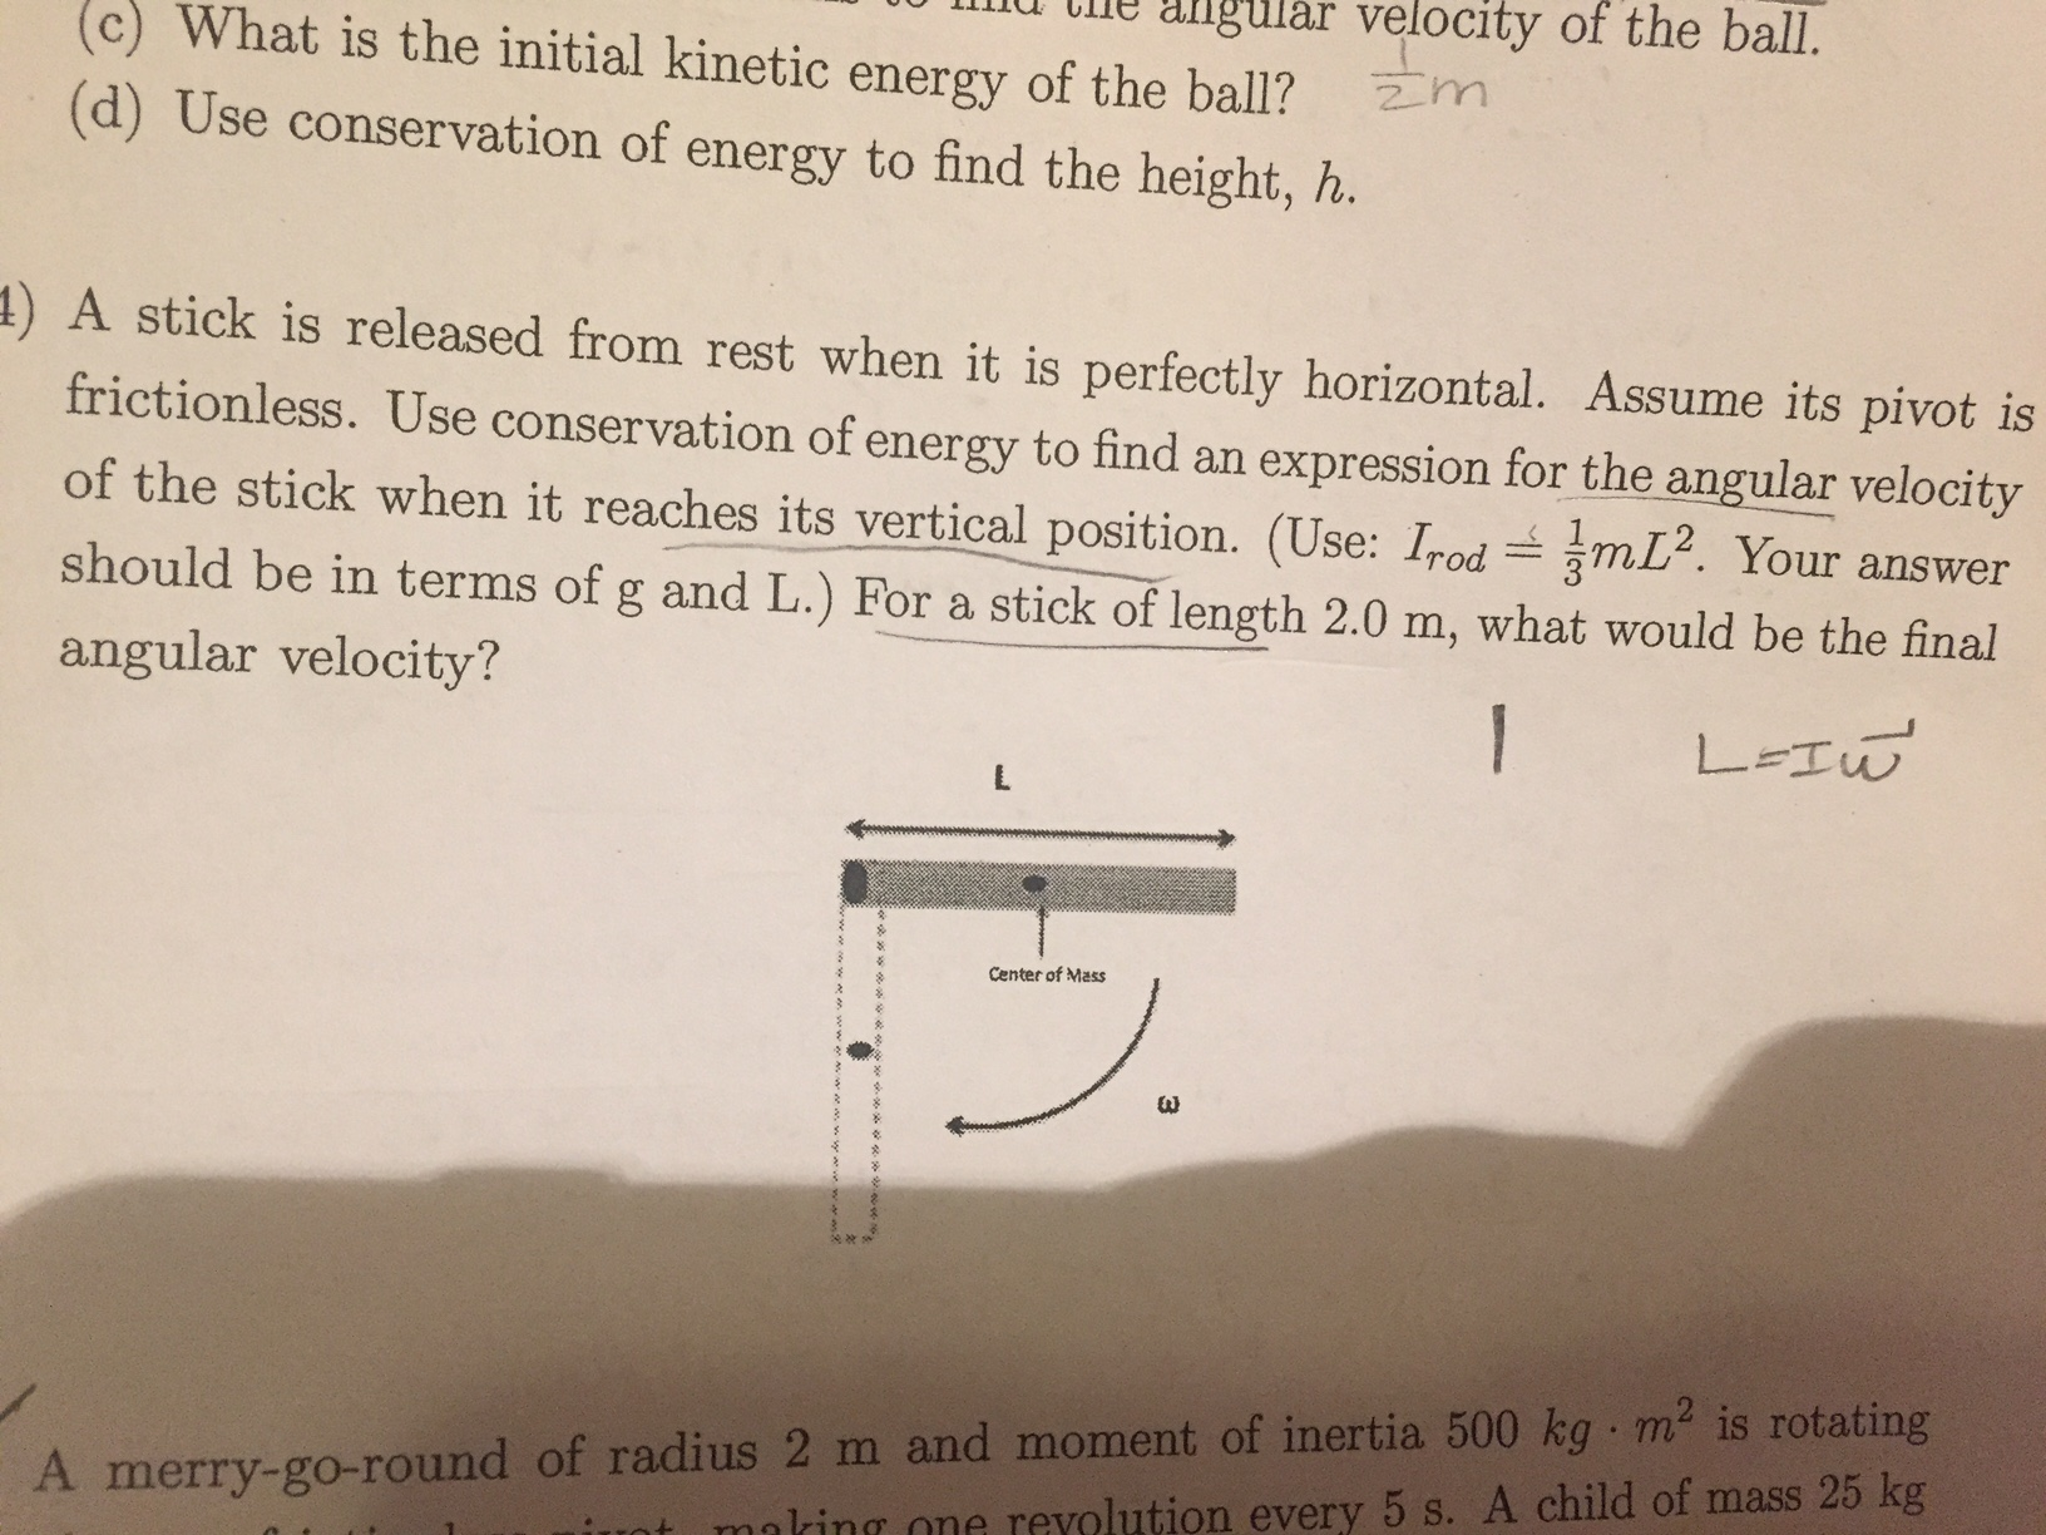 What Is The Initial Kinetic Energy Of The Ball? Us